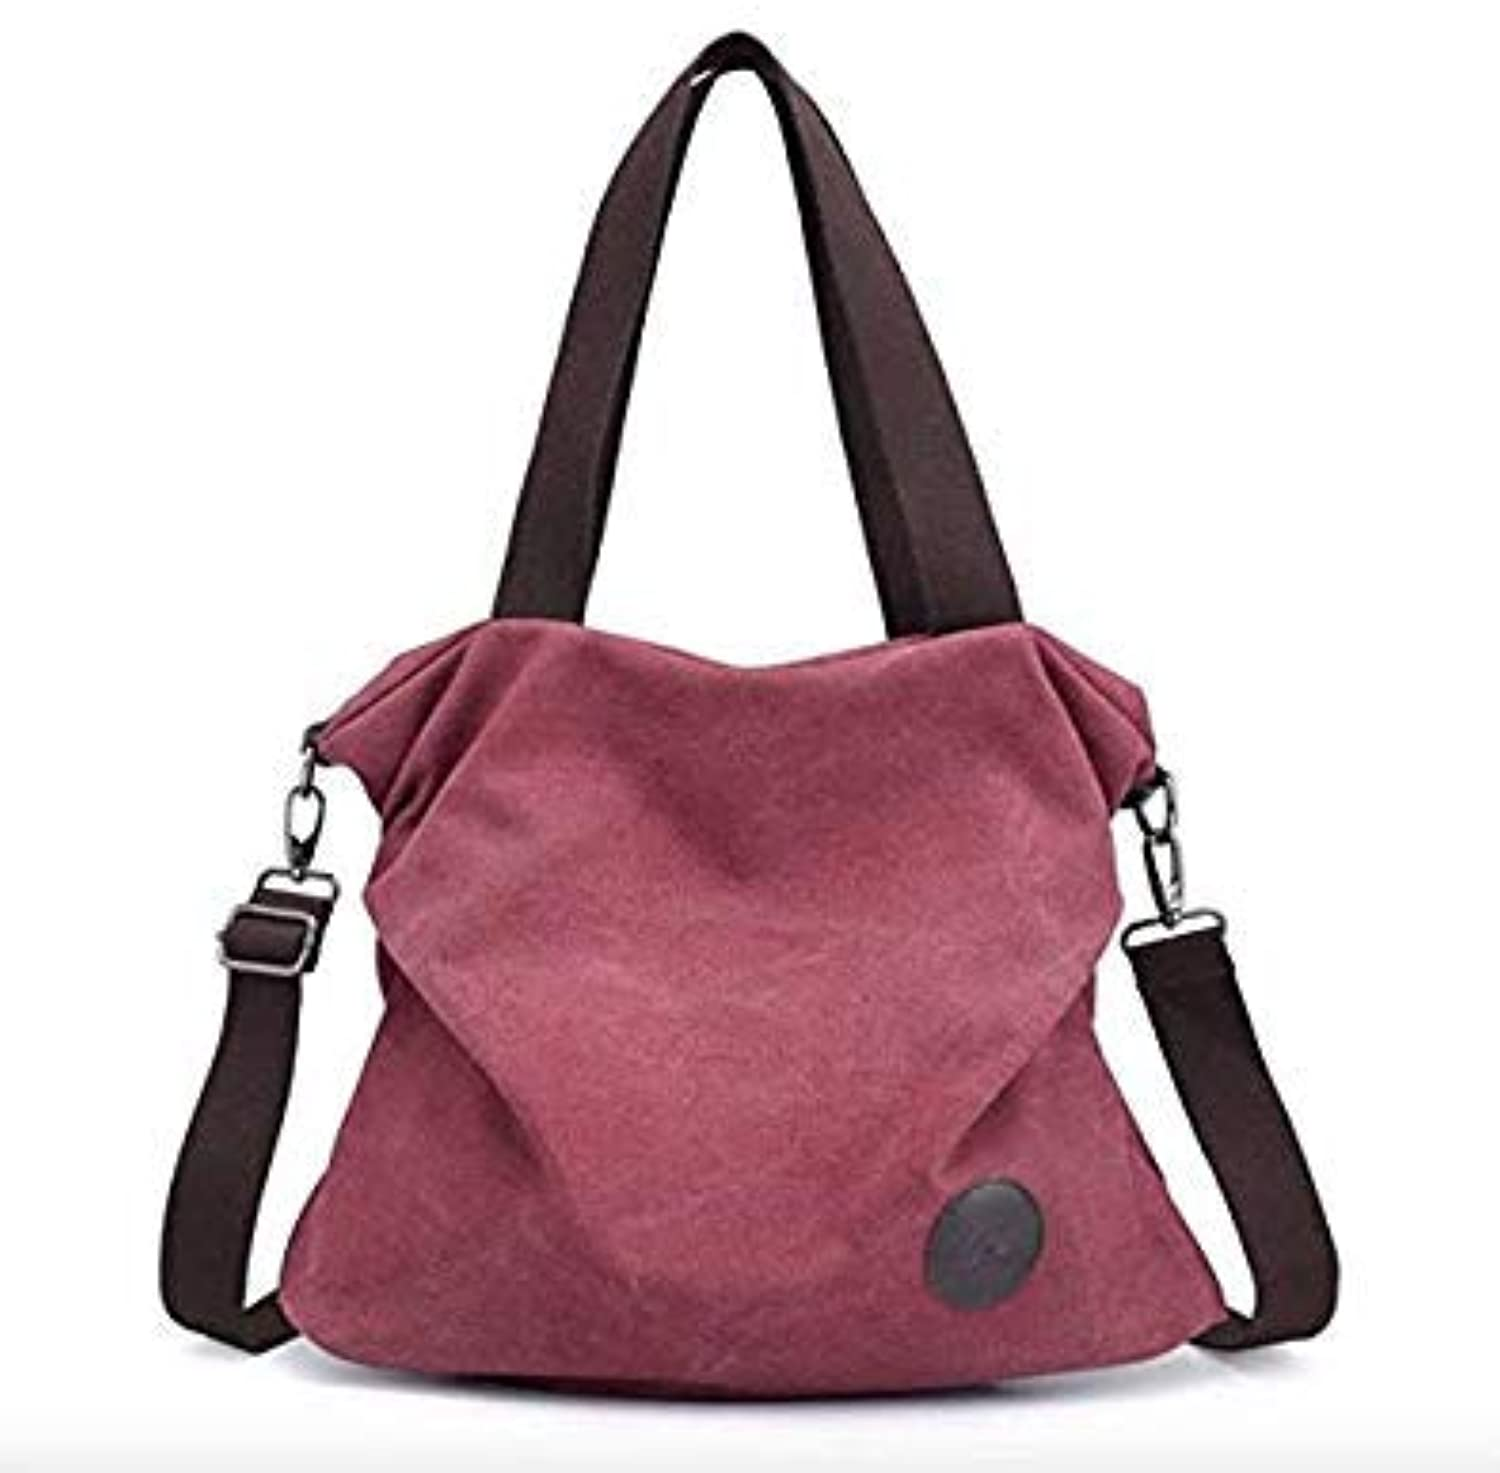 Bloomerang Brand Large Pocket Casual Tote Women's Handbag Shoulder Crossbody Handbags Canvas Leather Capacity Bags for Women color Wine red-Small